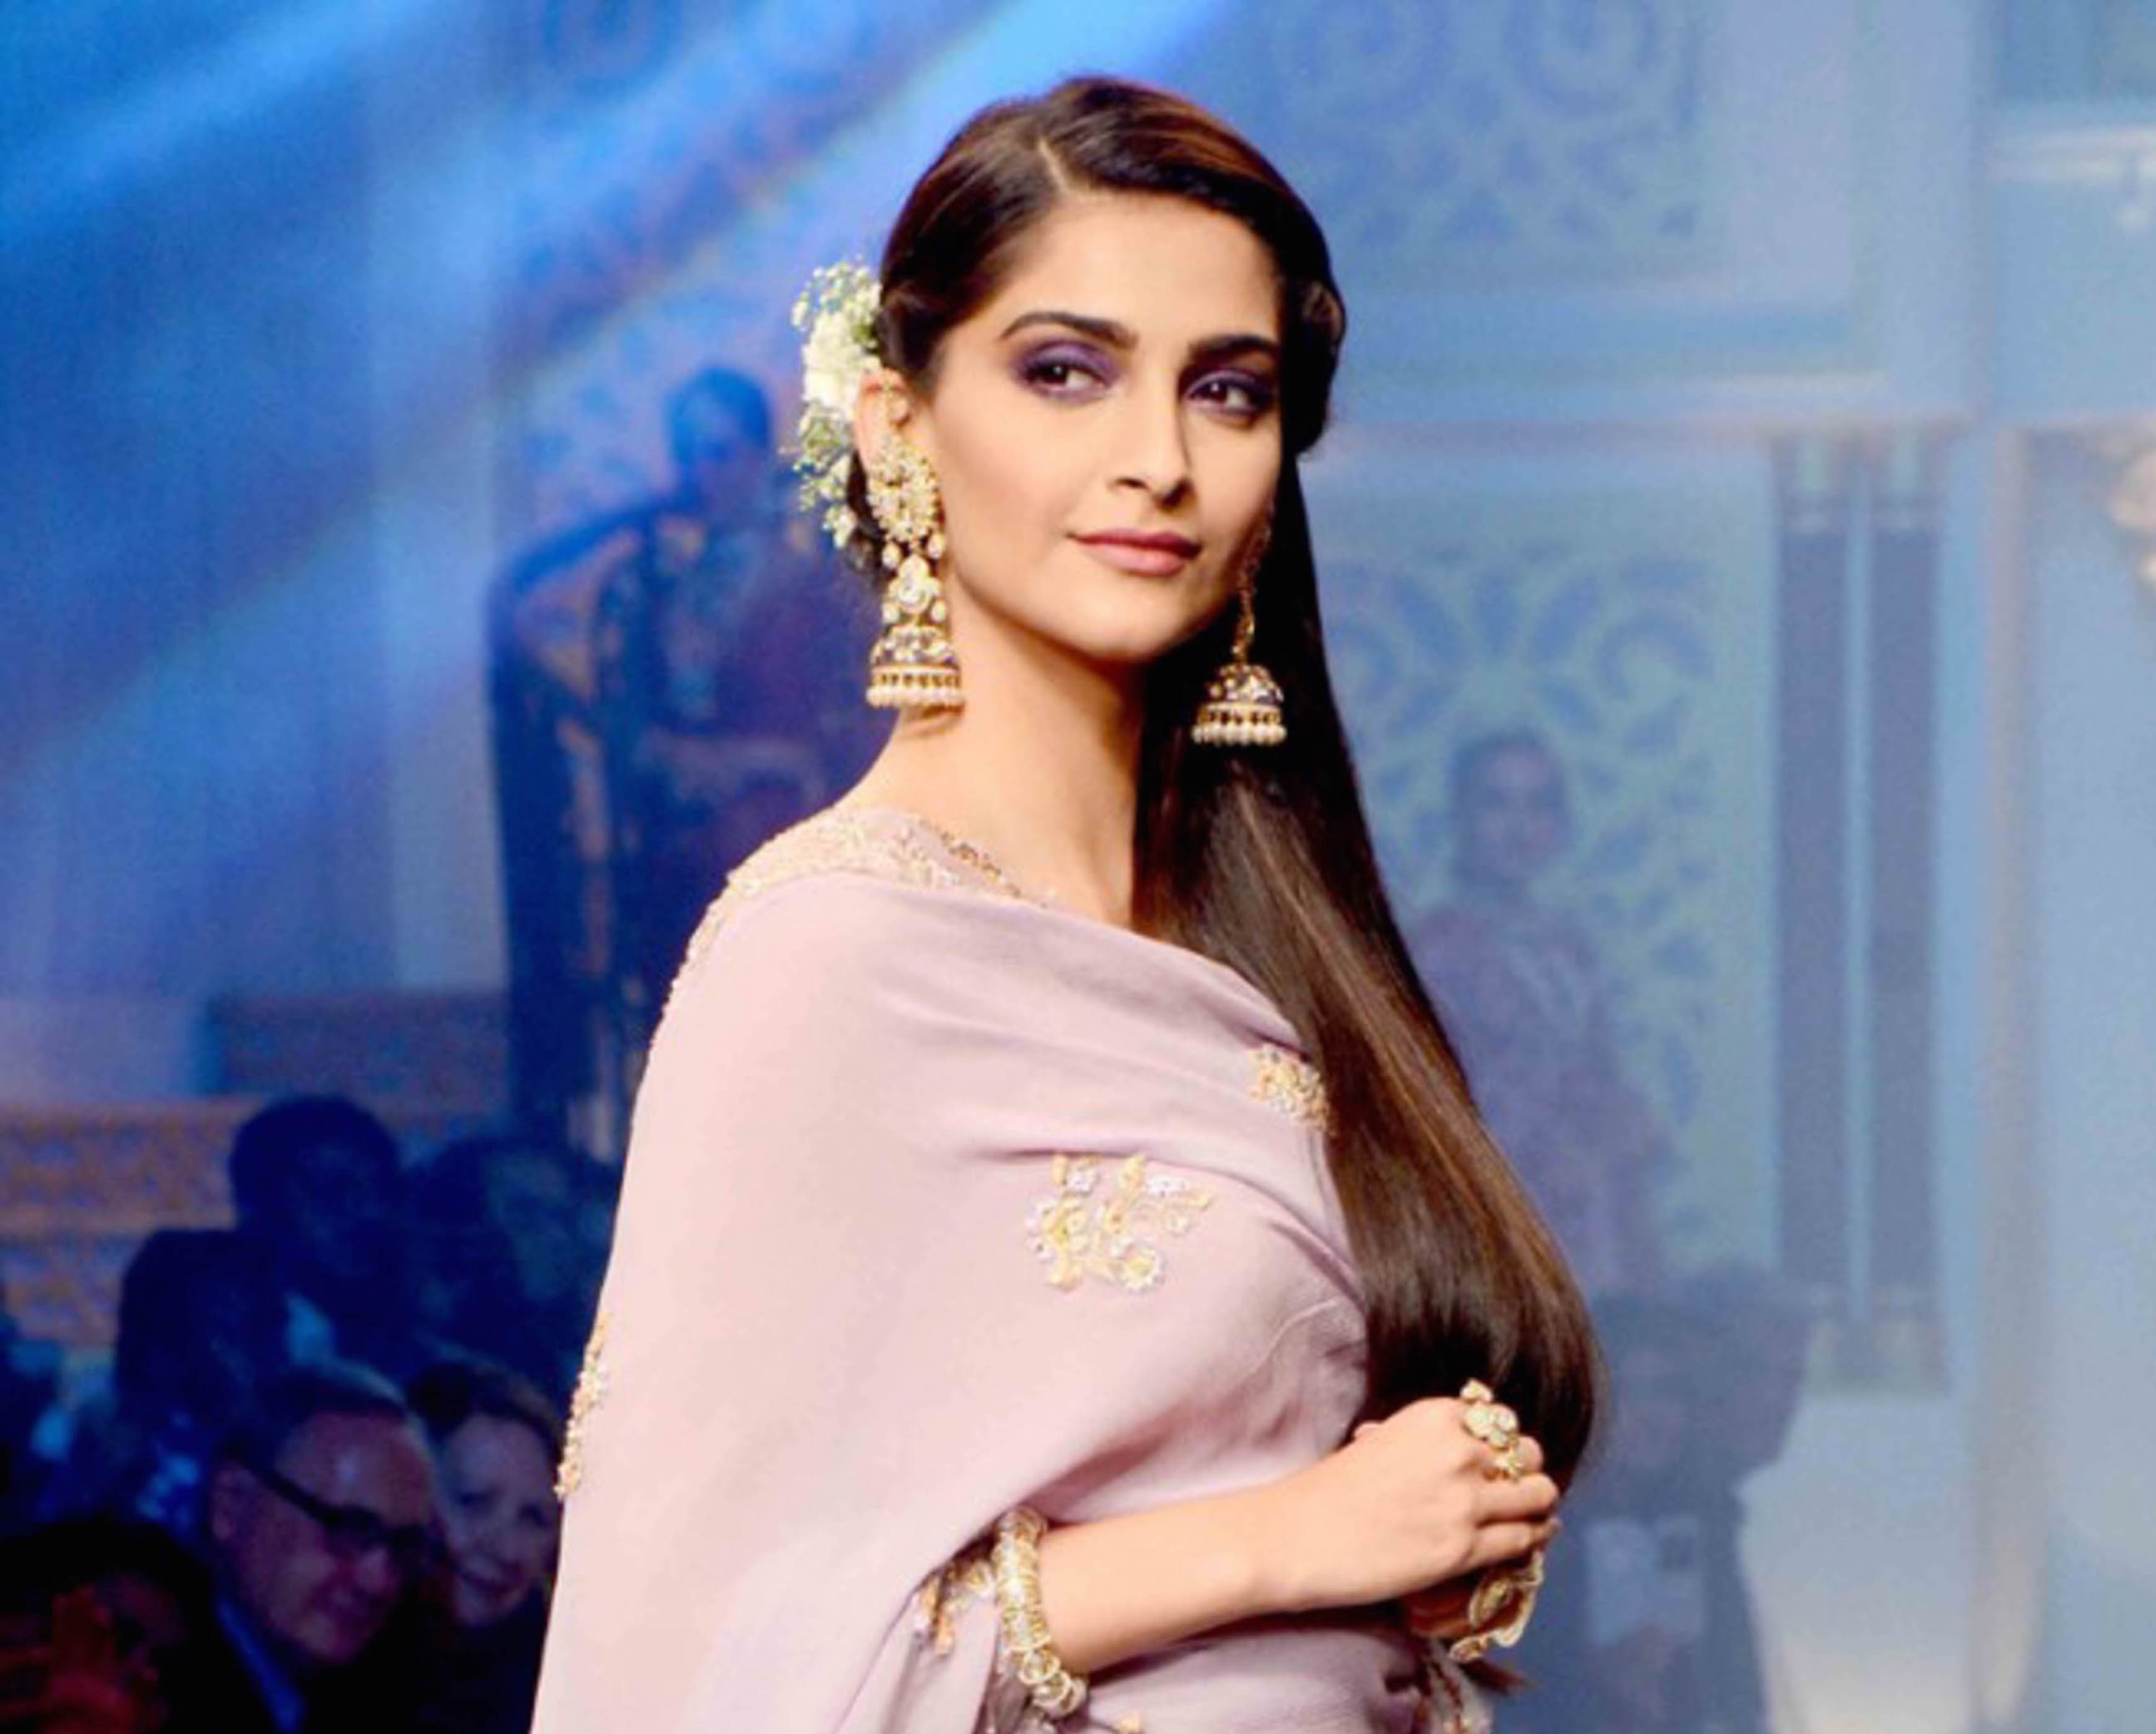 Bridal Jewellery Trends for the Modern Indian Bride - Sonam Kapoor - The Maharani Diaries